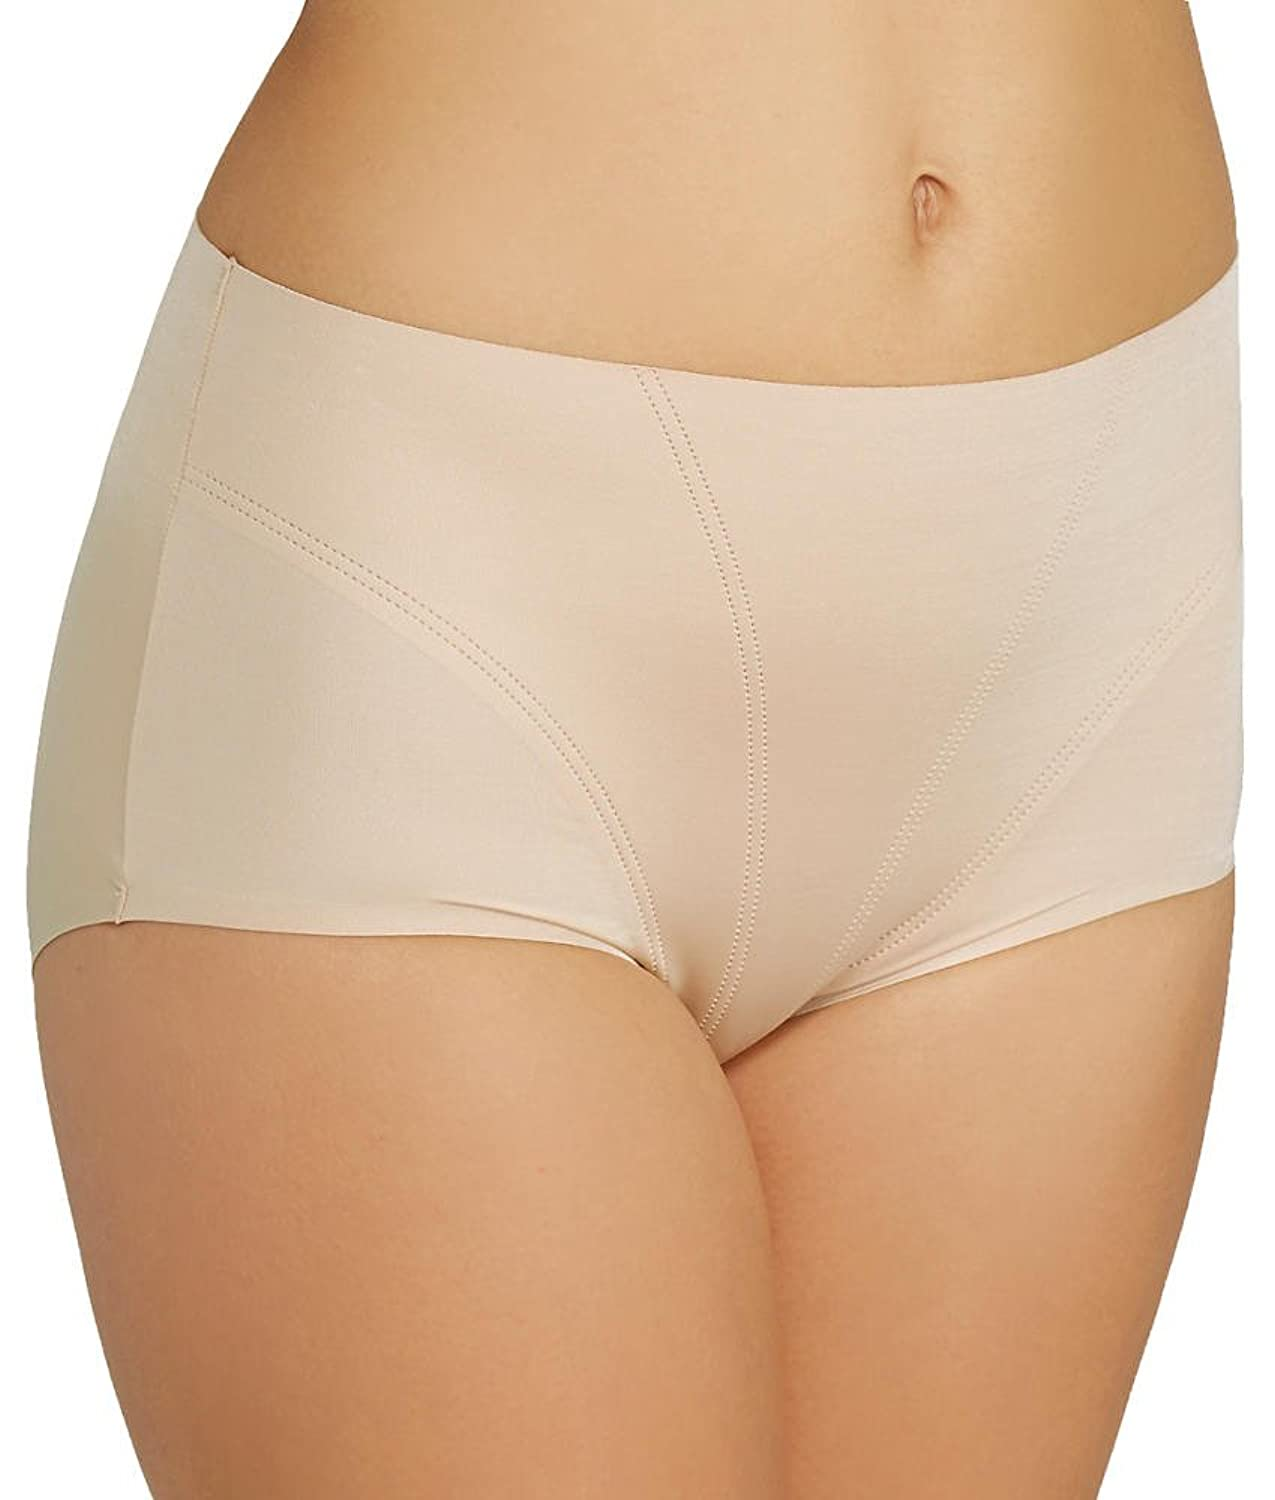 Spanx Retro Brief Retro-Shaping-Slip Damen günstig online kaufen